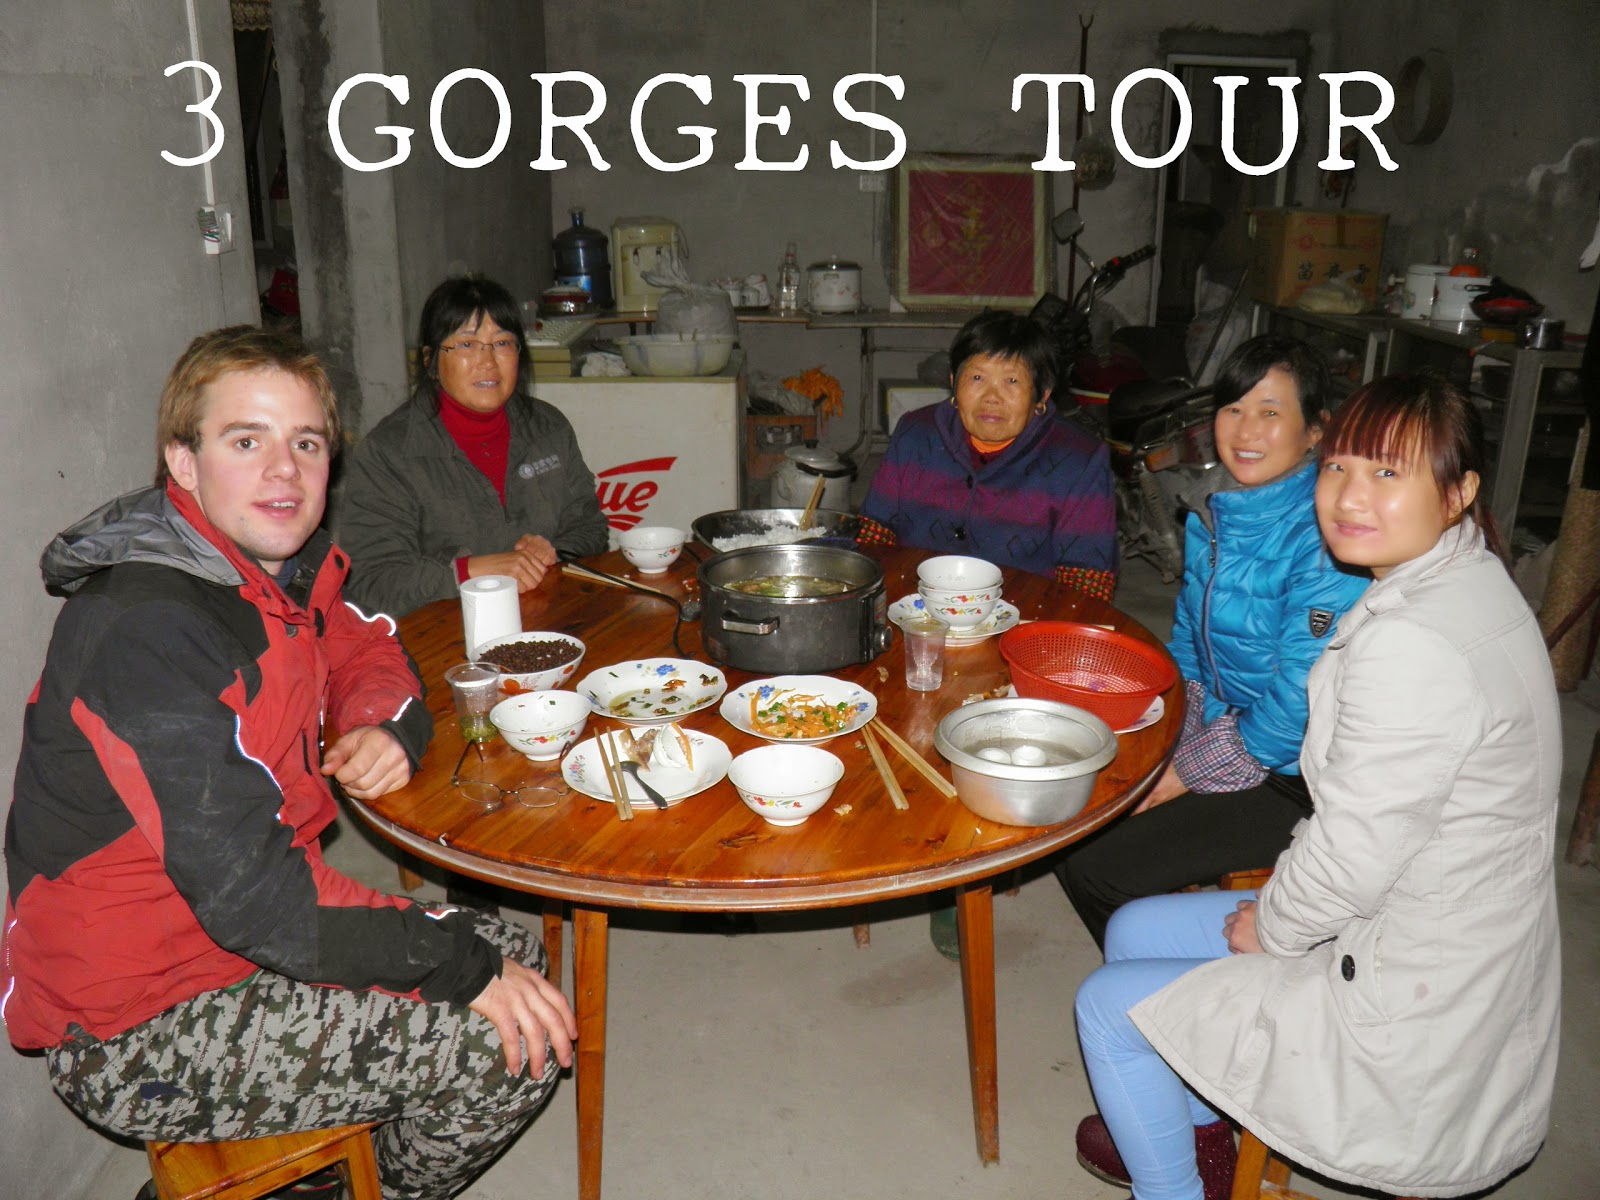 https://sites.google.com/site/tombrucecycling/the-three-gorges-tour